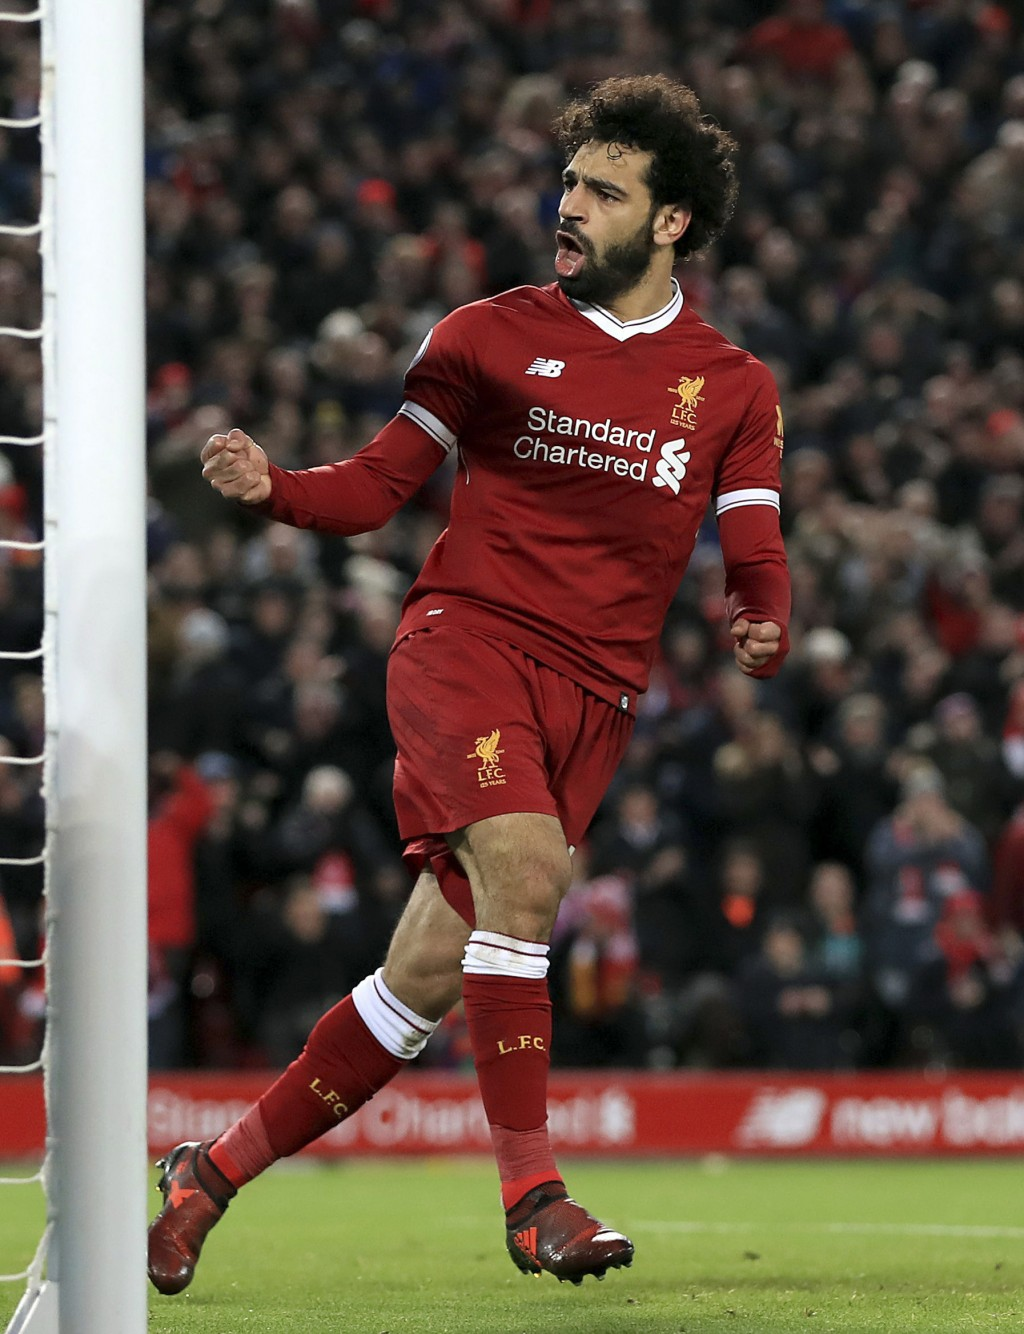 Liverpool's Mohamed Salah celebrates scoring his side's first goal against Leicester City during the English Premier League soccer match at Anfield, L...